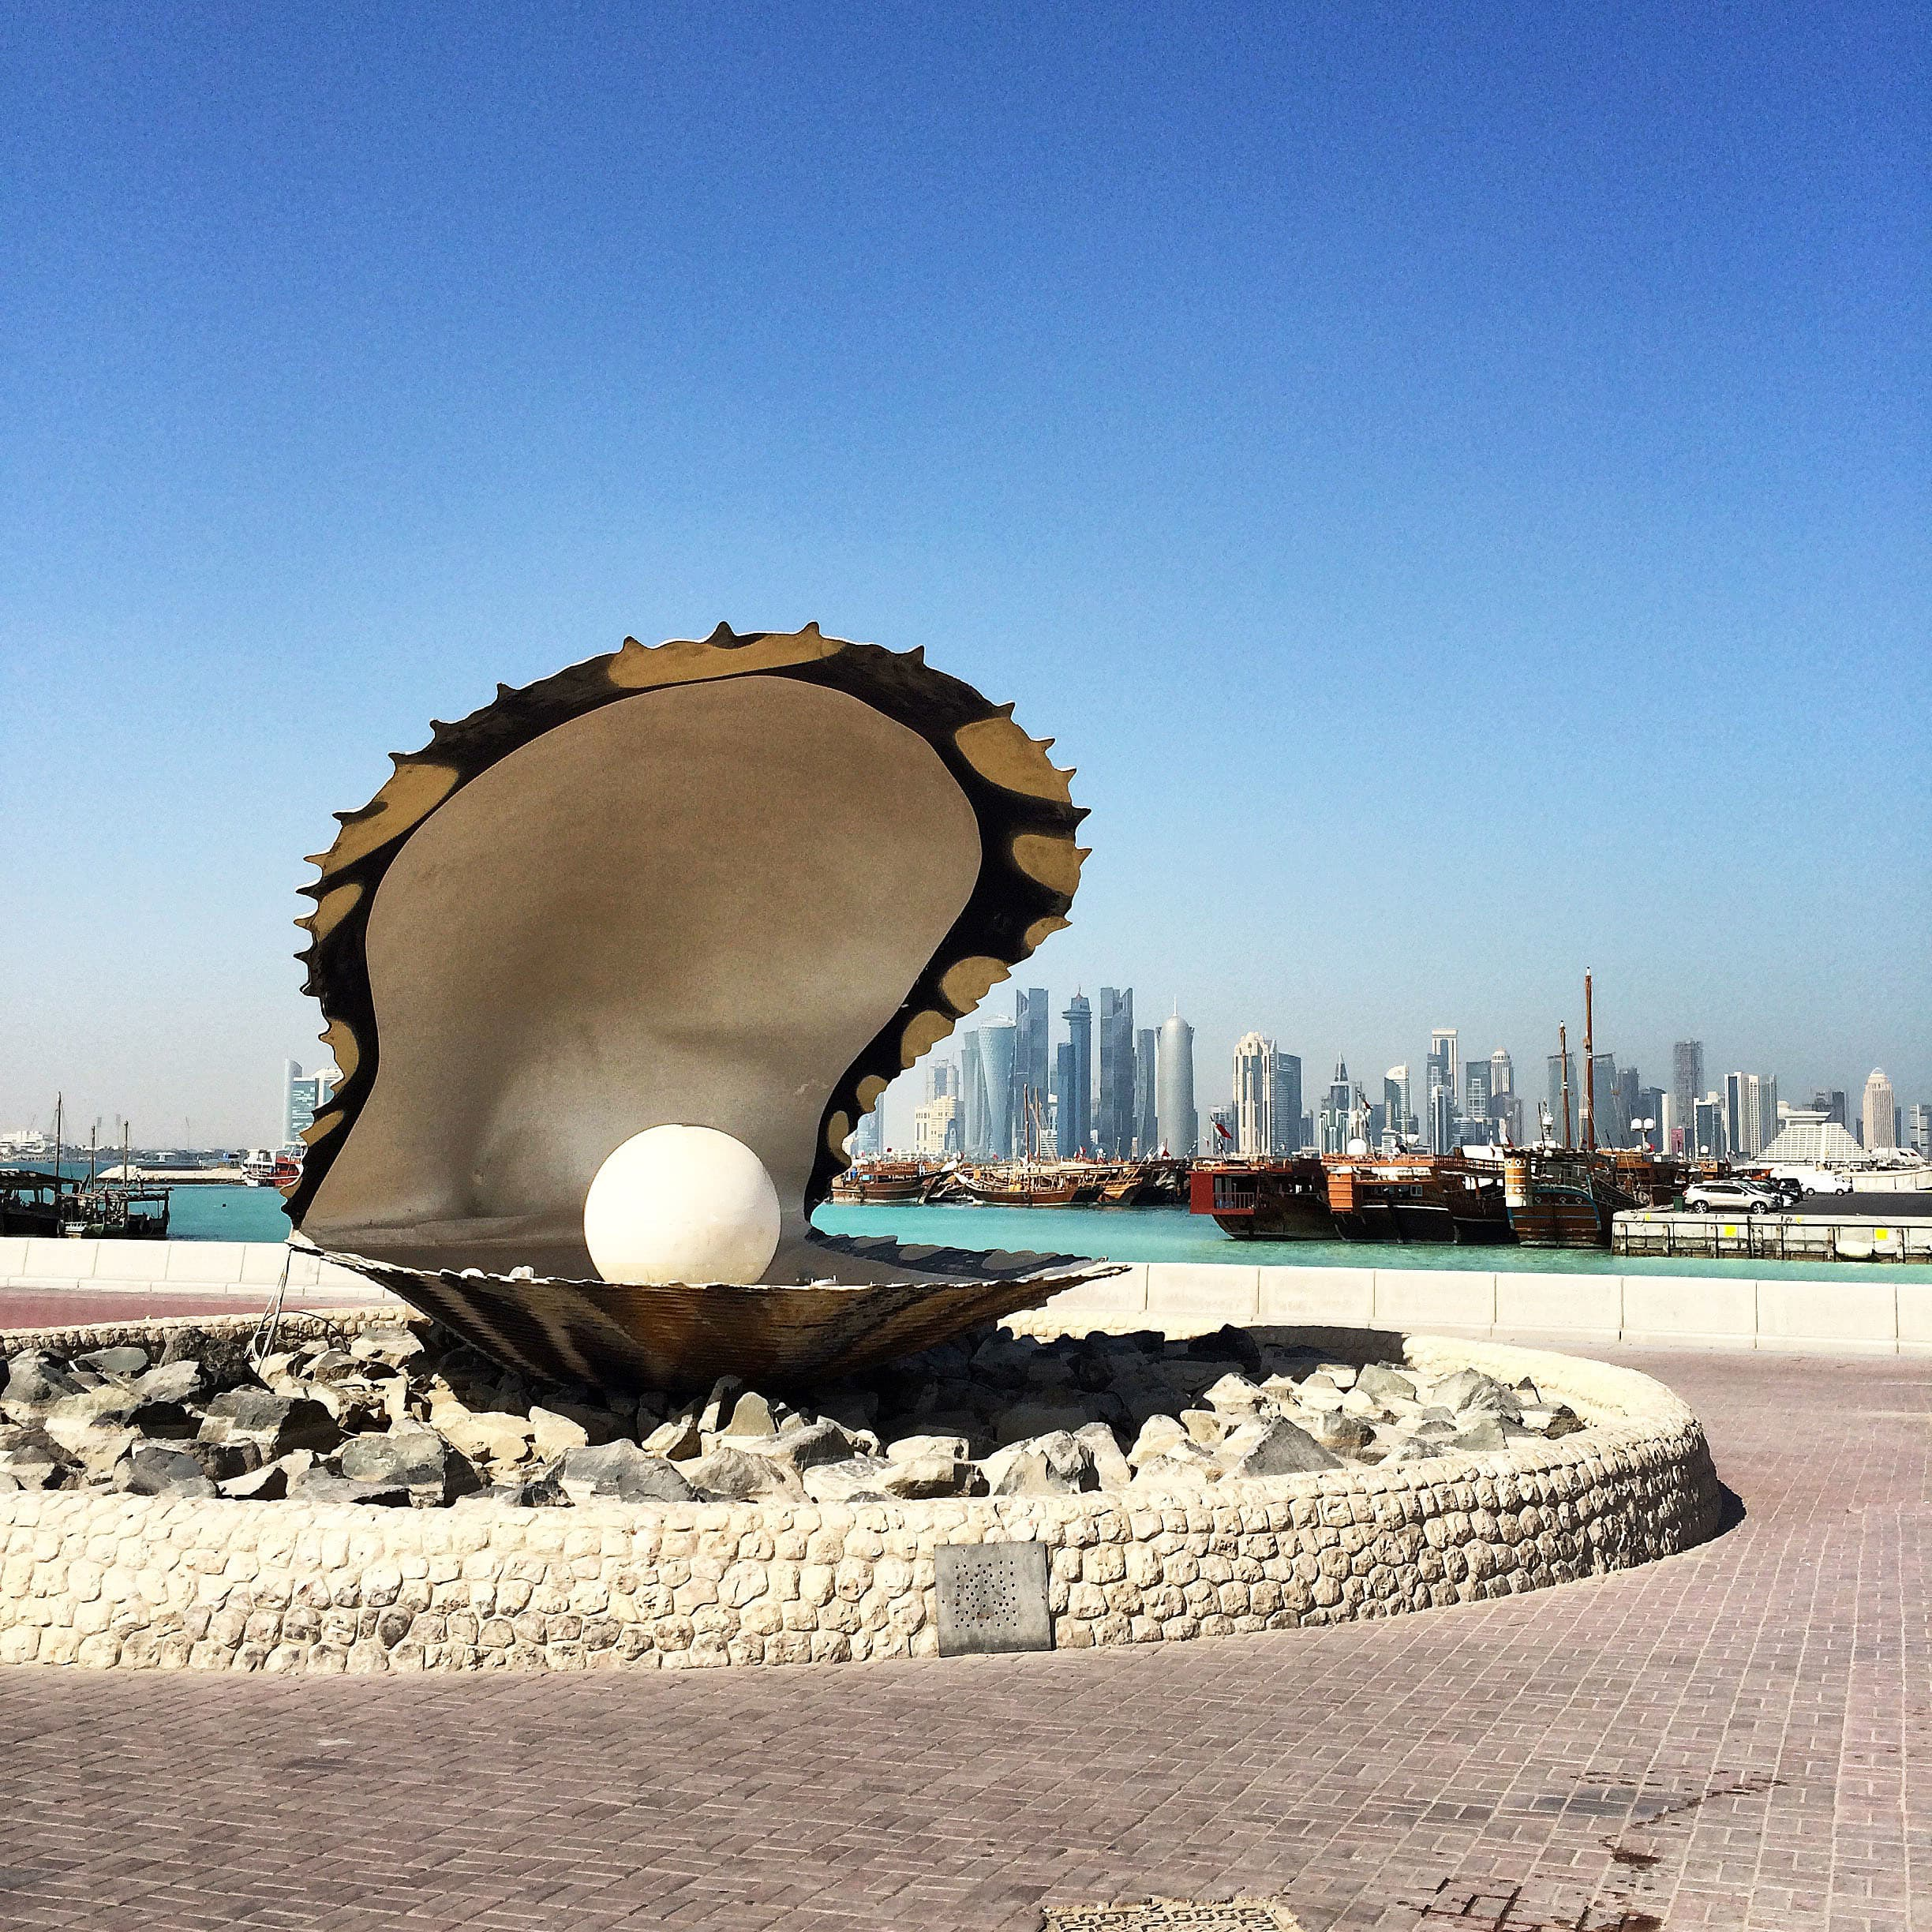 The pearl monument on Doha Corniche.